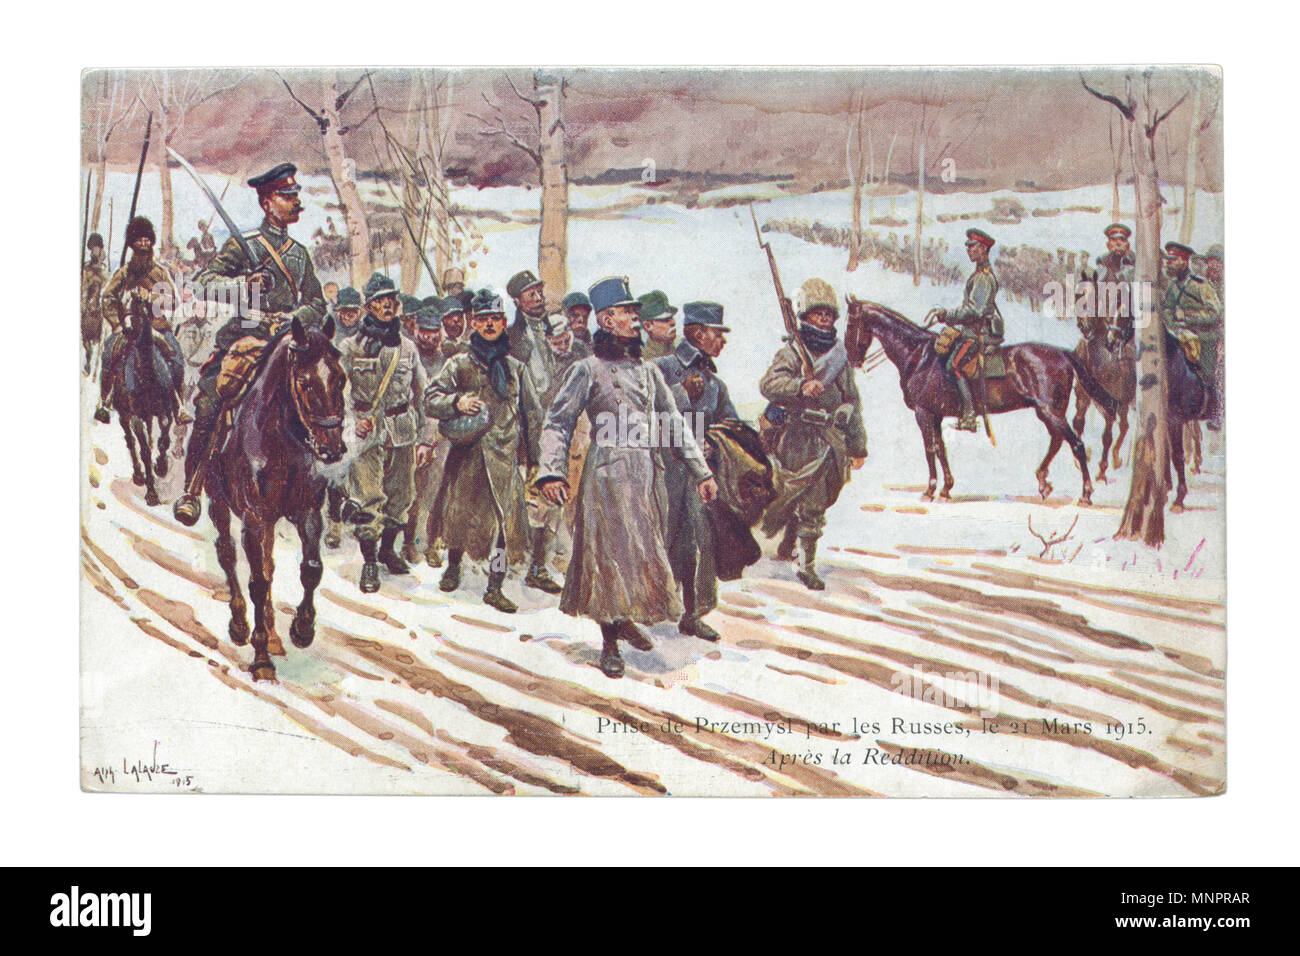 Old French postcard: Russian cavalrymen lead a column of prisoners of Austro-Hungarian soldiers after the capture fortress Przemysl, March 21 1915 - Stock Image